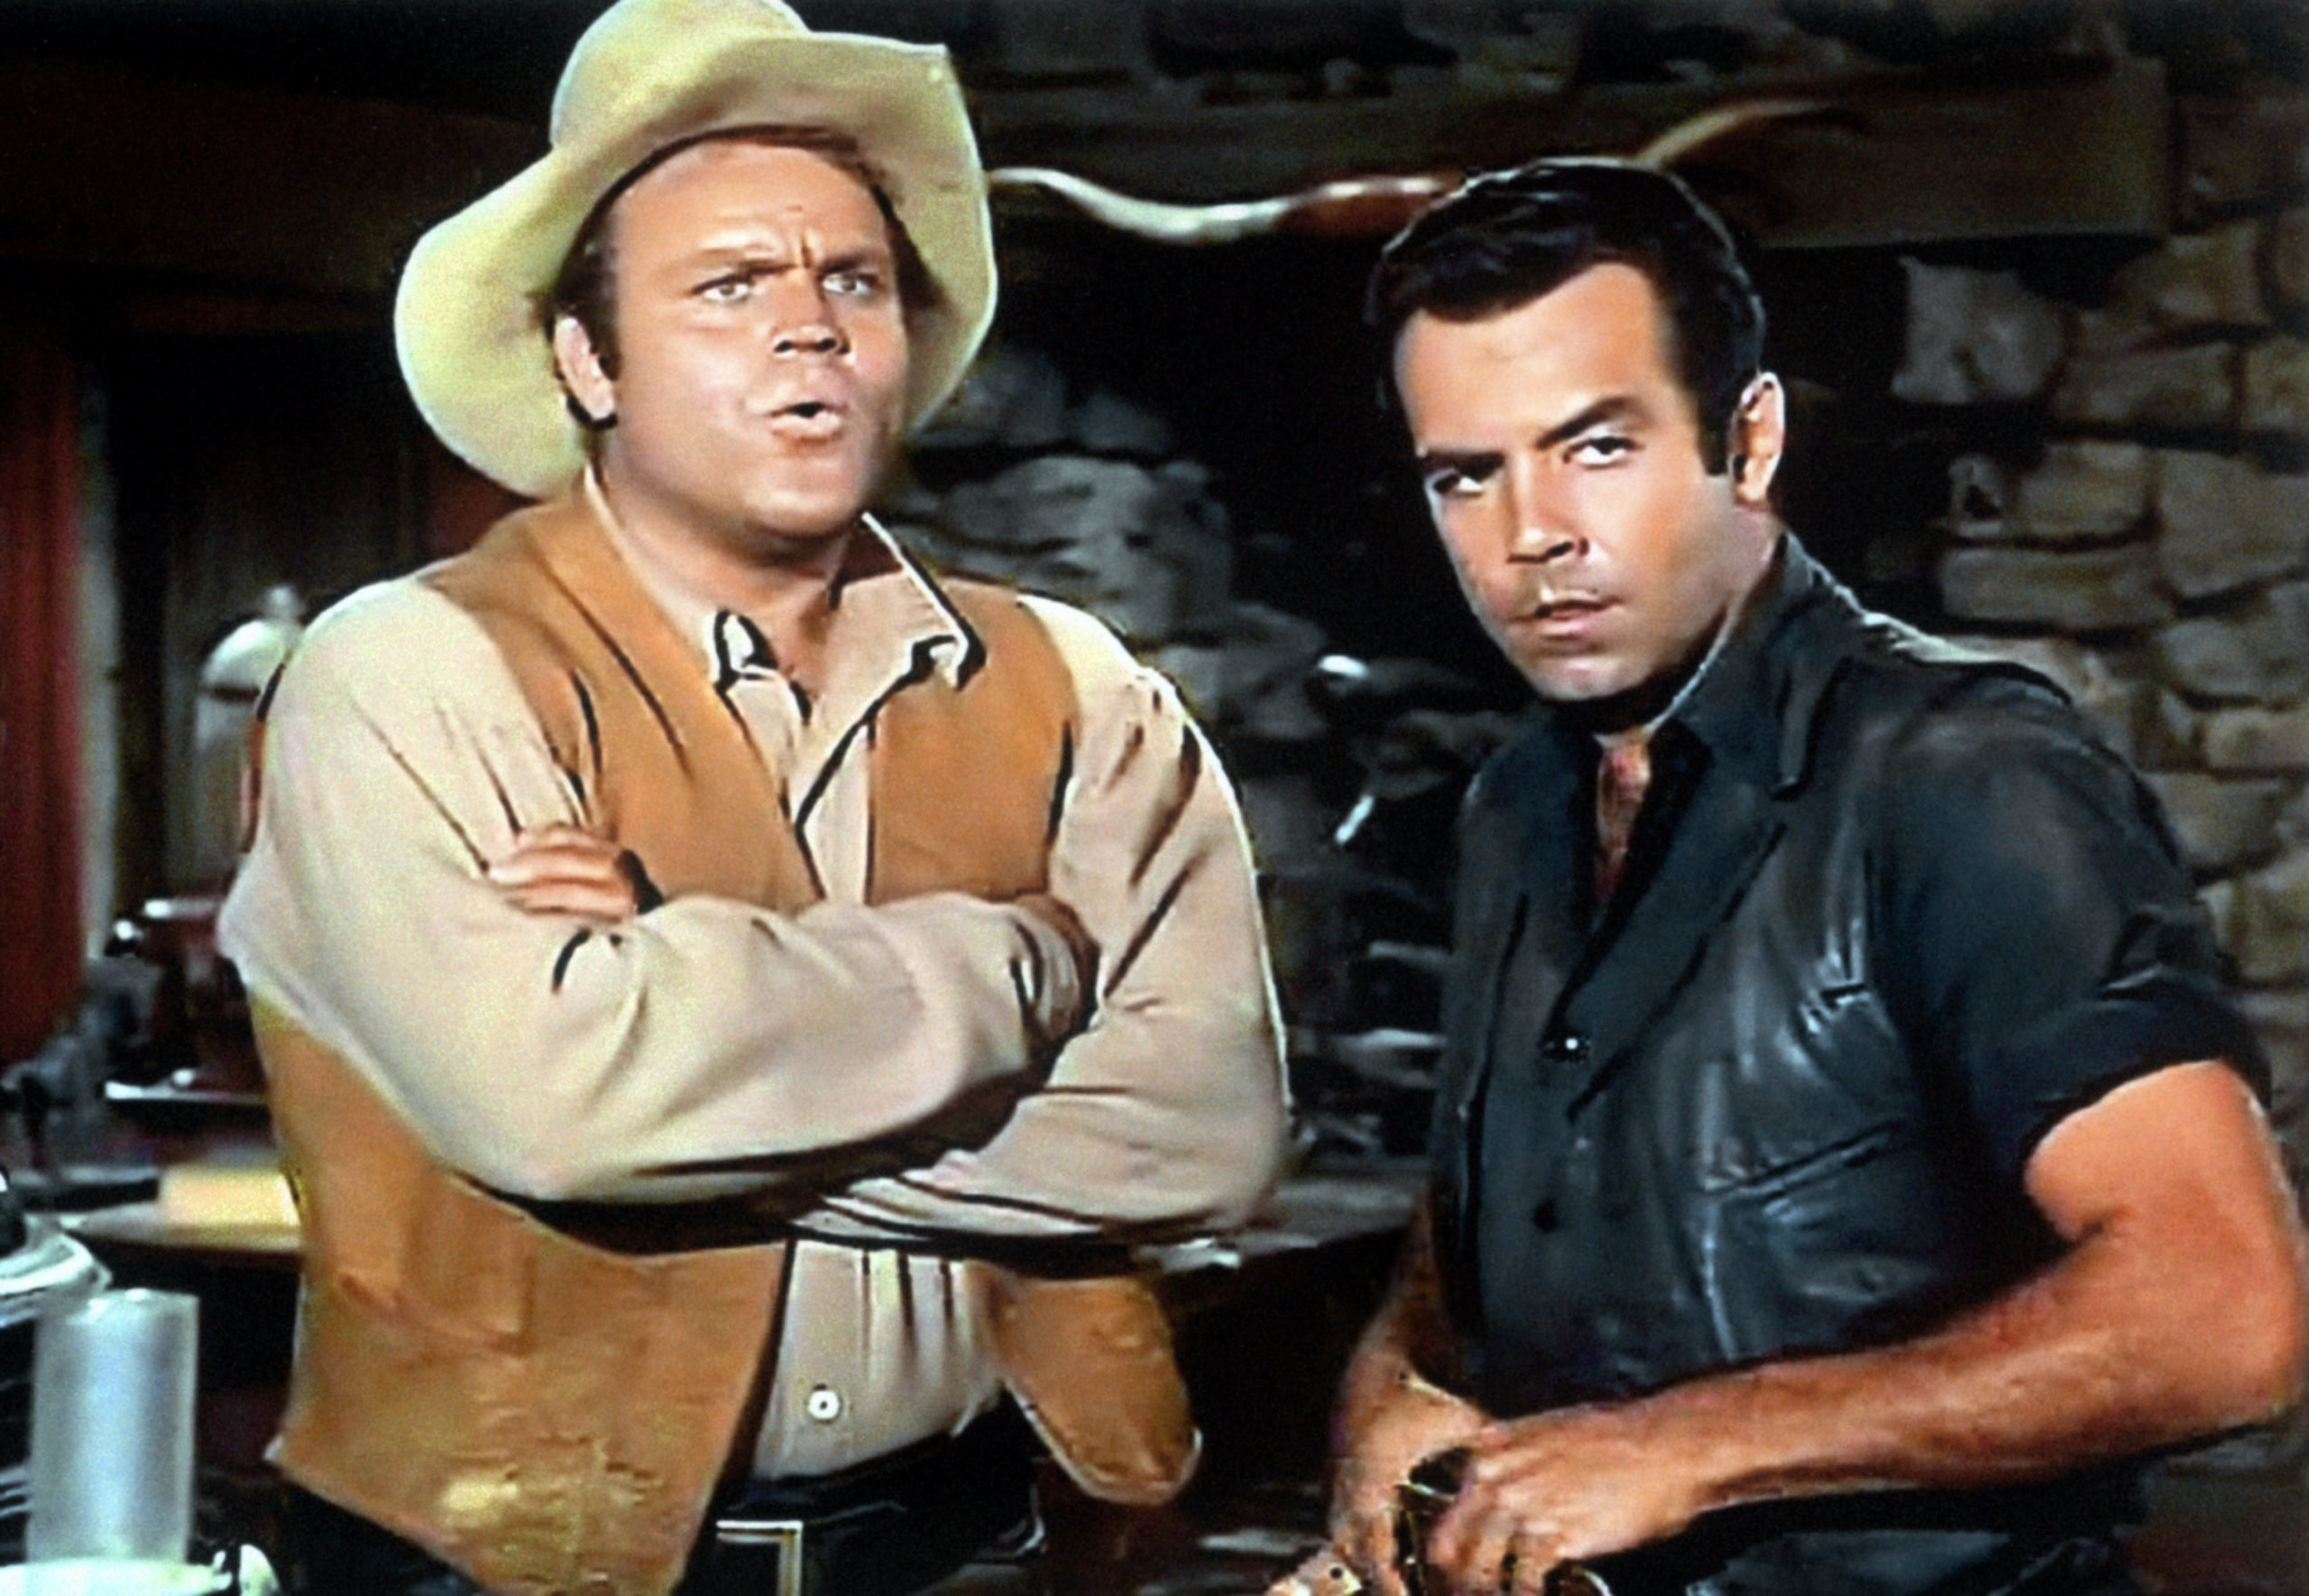 Dan Blocker and Pernell Roberts in Bonanza